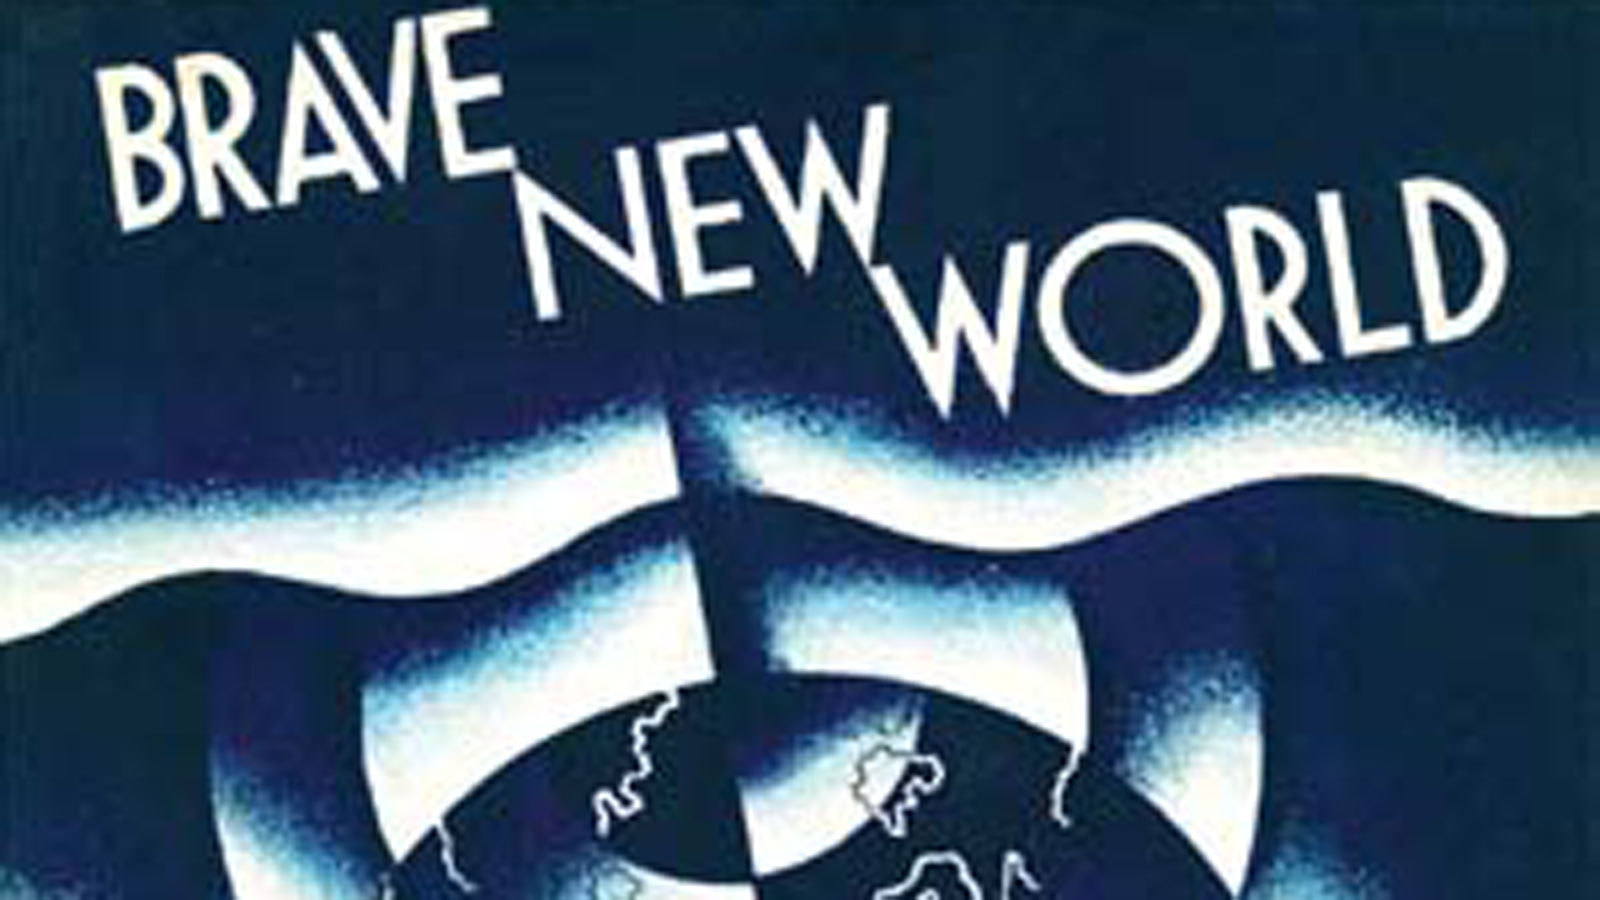 the search for true happiness in brave new world a novel by aldous huxley Discussion guide for brave new world aldous huxley the great books foundation in the world of huxley's novel, is art beneficial to human and happiness 2 is it true that providence takes its cue from men 3.